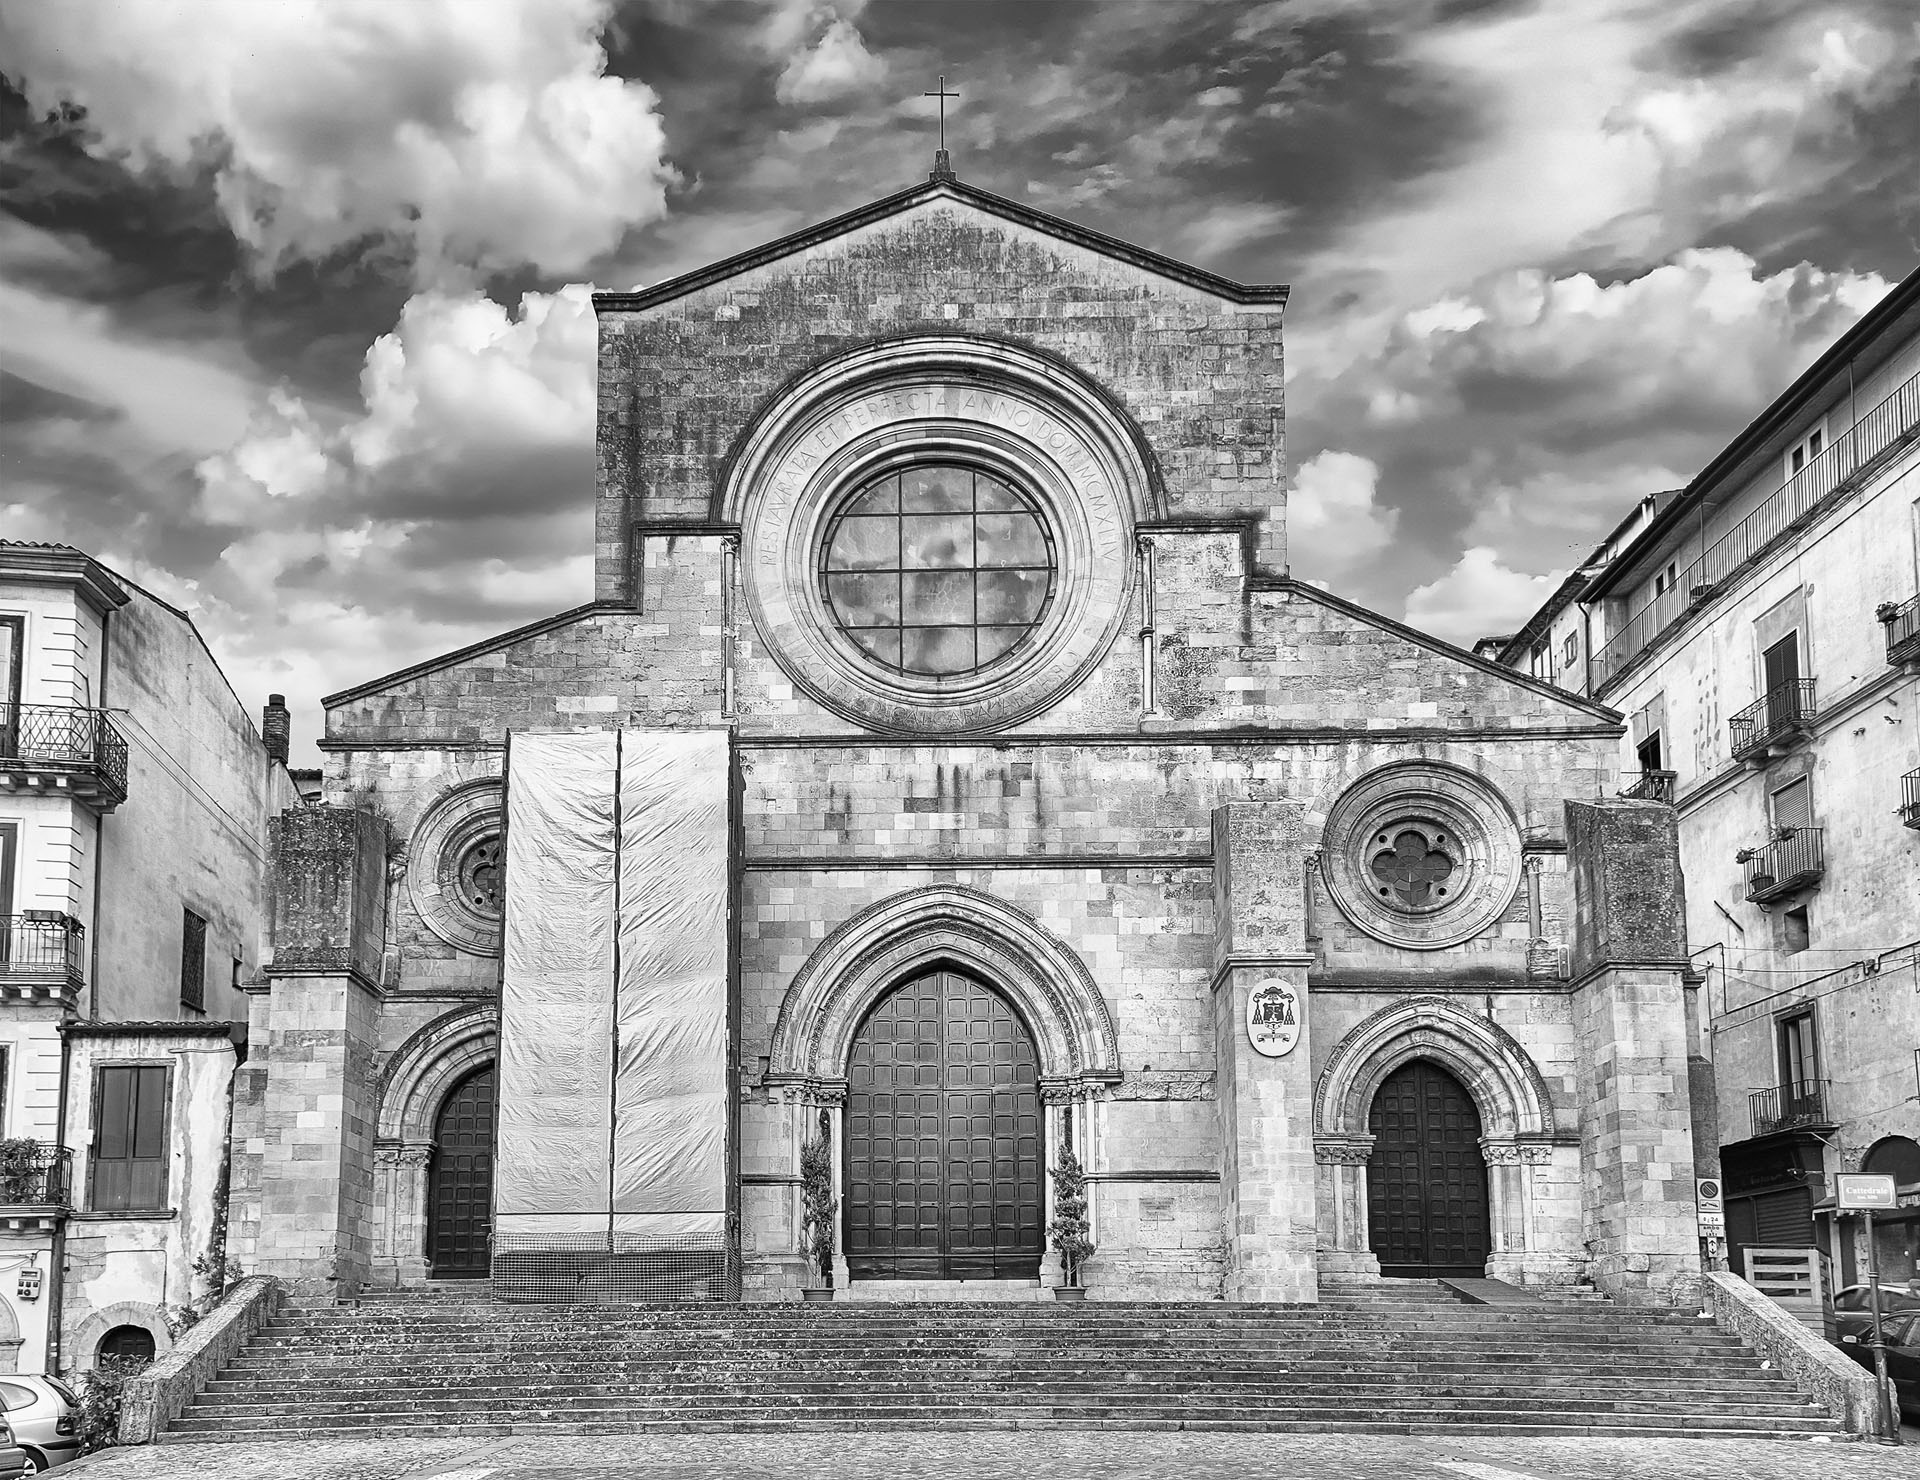 Scenic facade of the ancient Cosenza's Cathedral, Italy